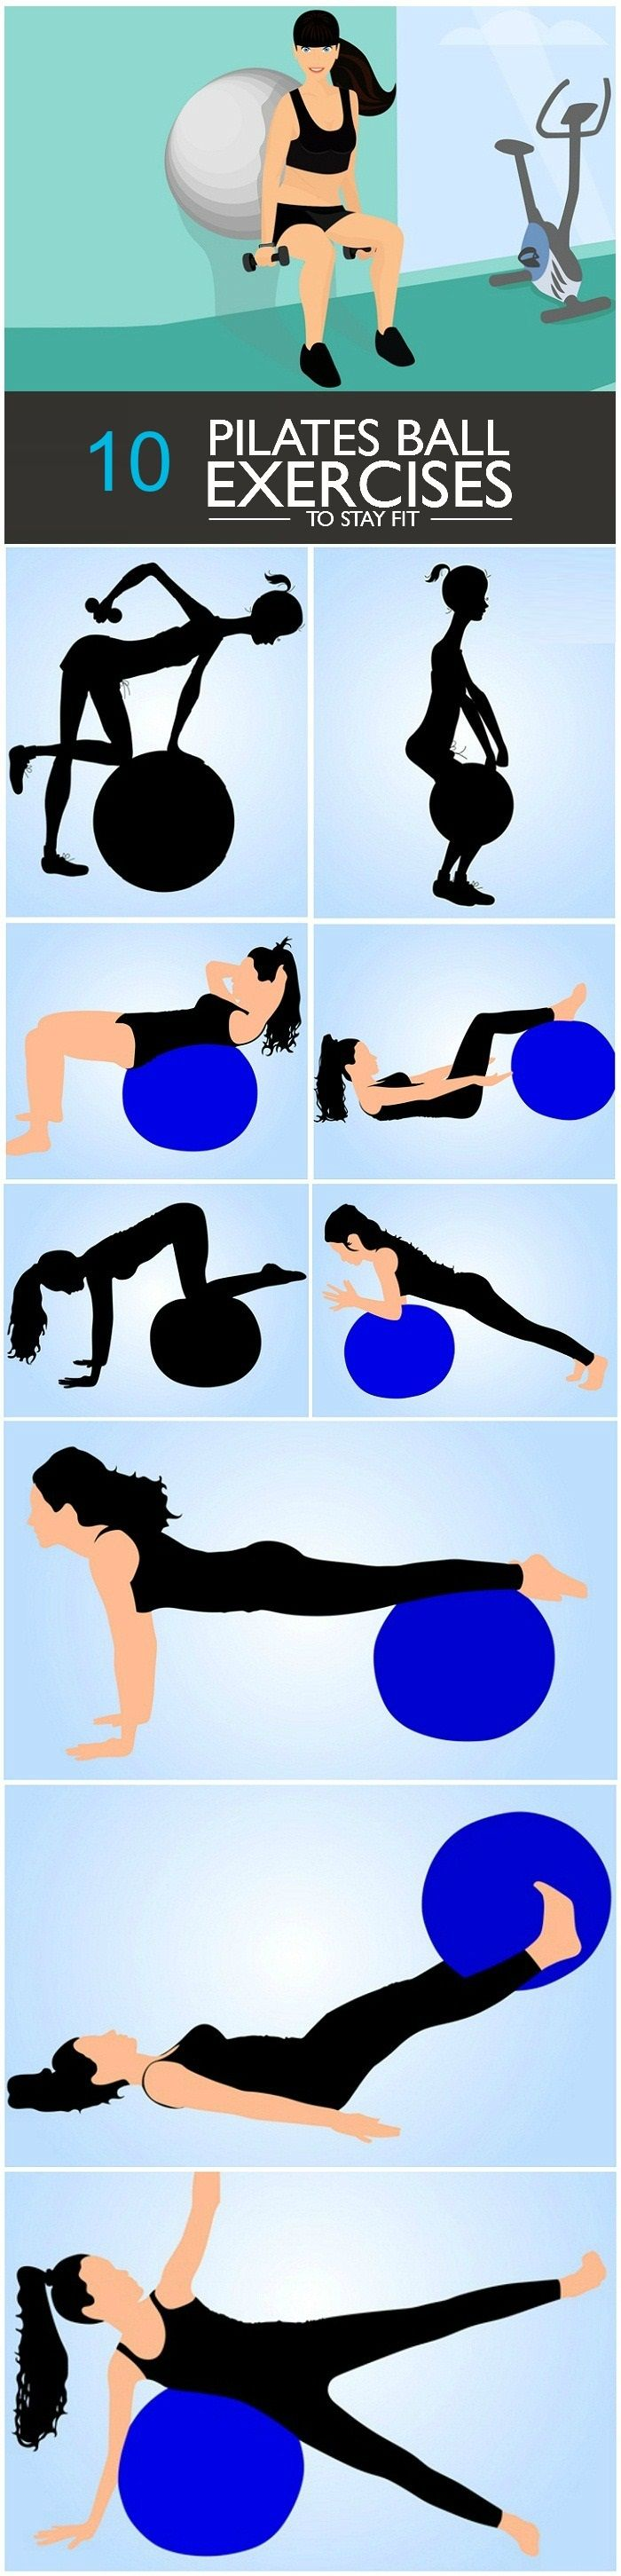 Fitness : Want to know what they are? Go ahead with your read!